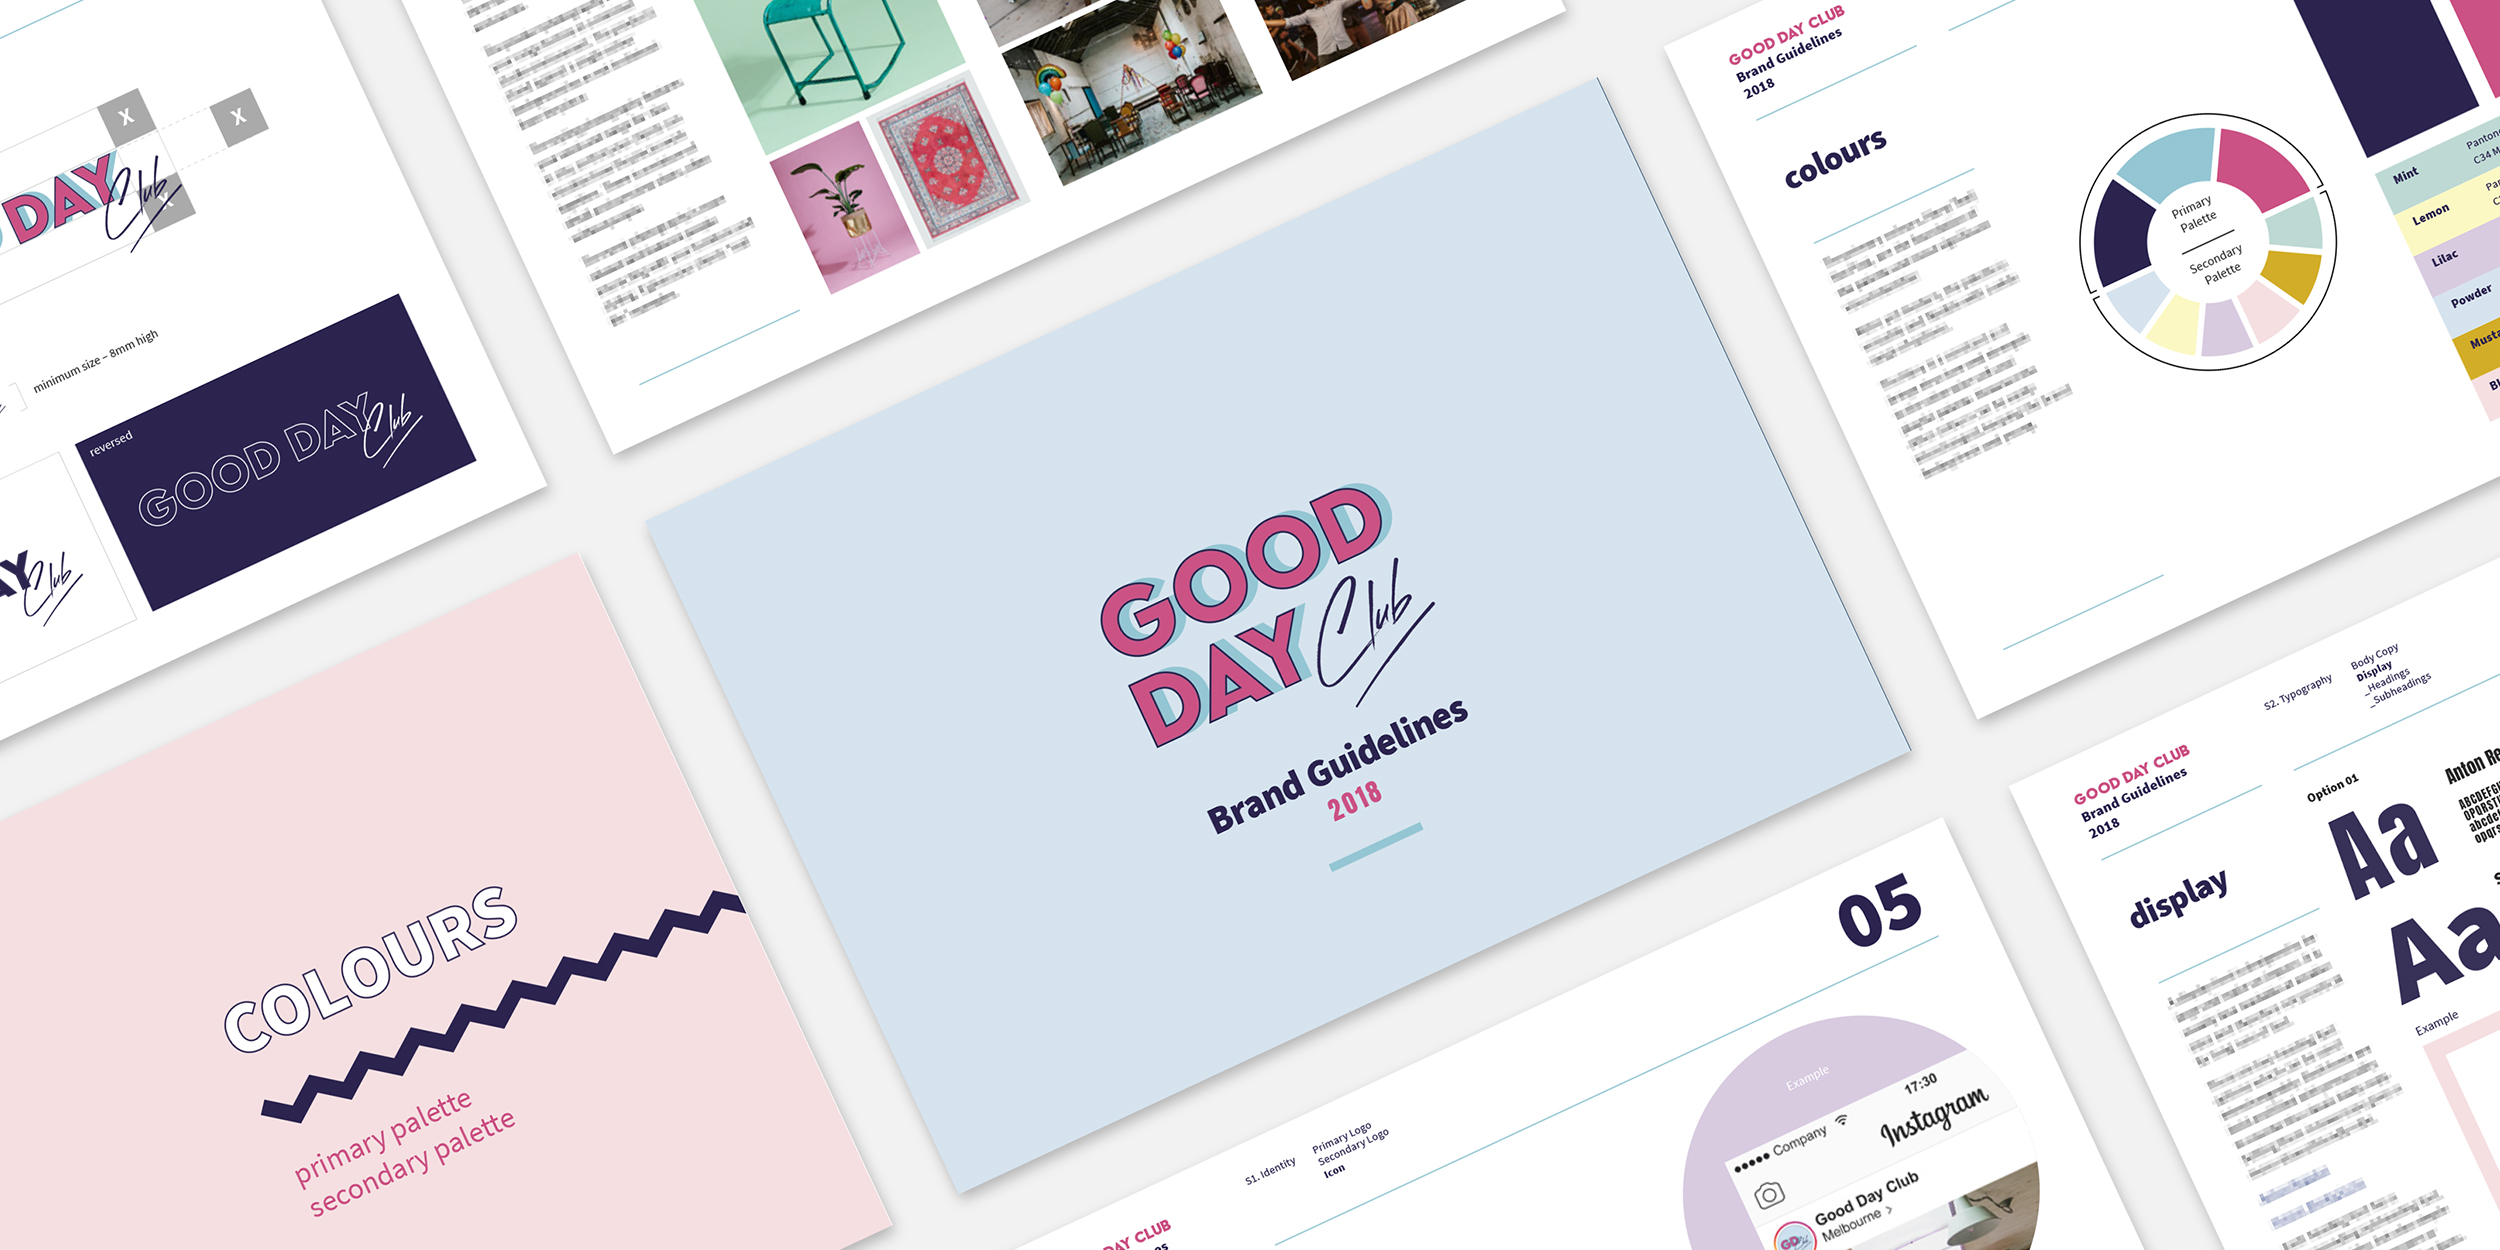 Good Day Club branding style guide pages layout